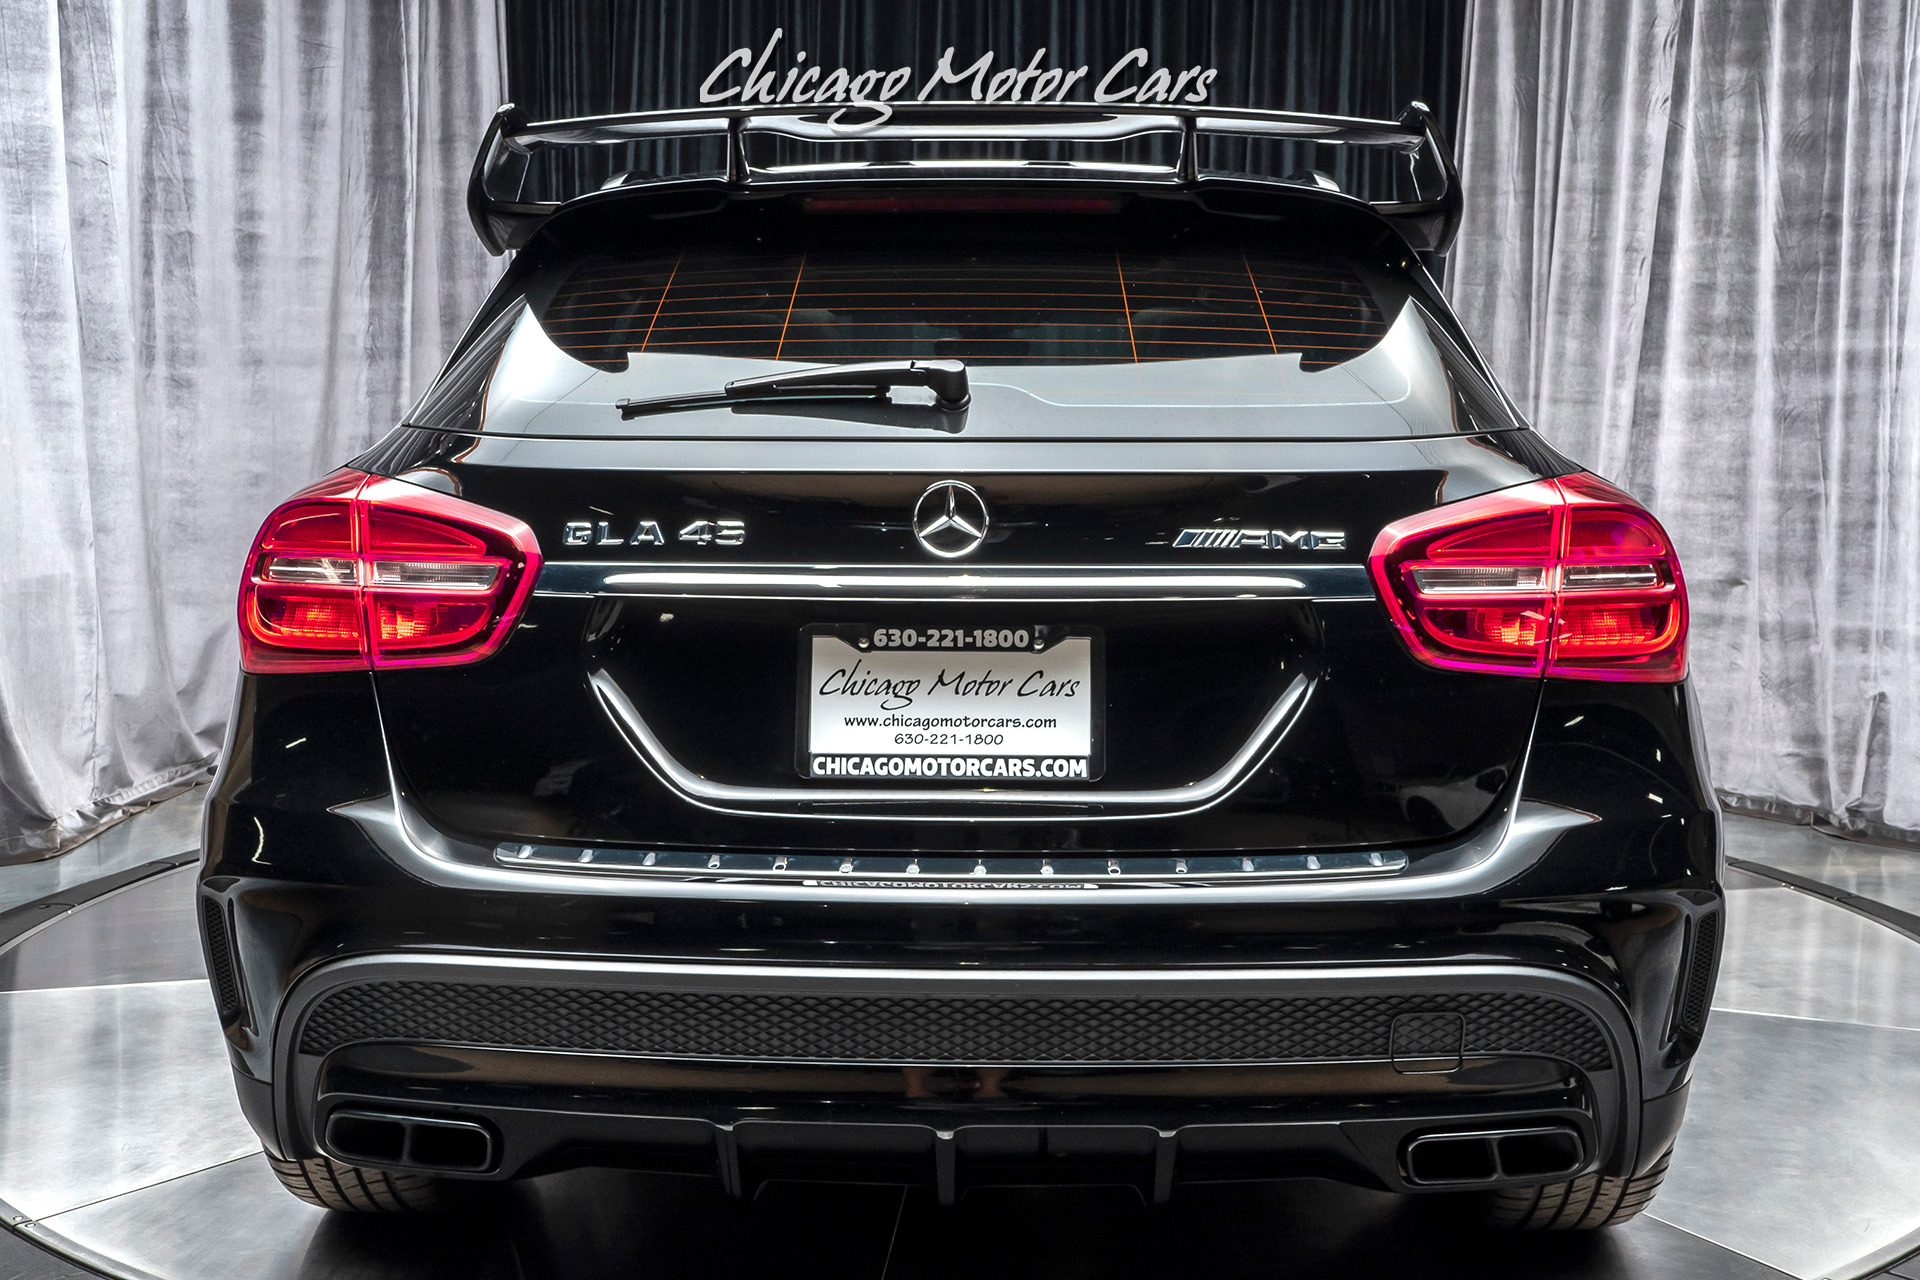 Used-2015-Mercedes-Benz-GLA45-AMG-Hatchback-MSRP-64K-LOADED